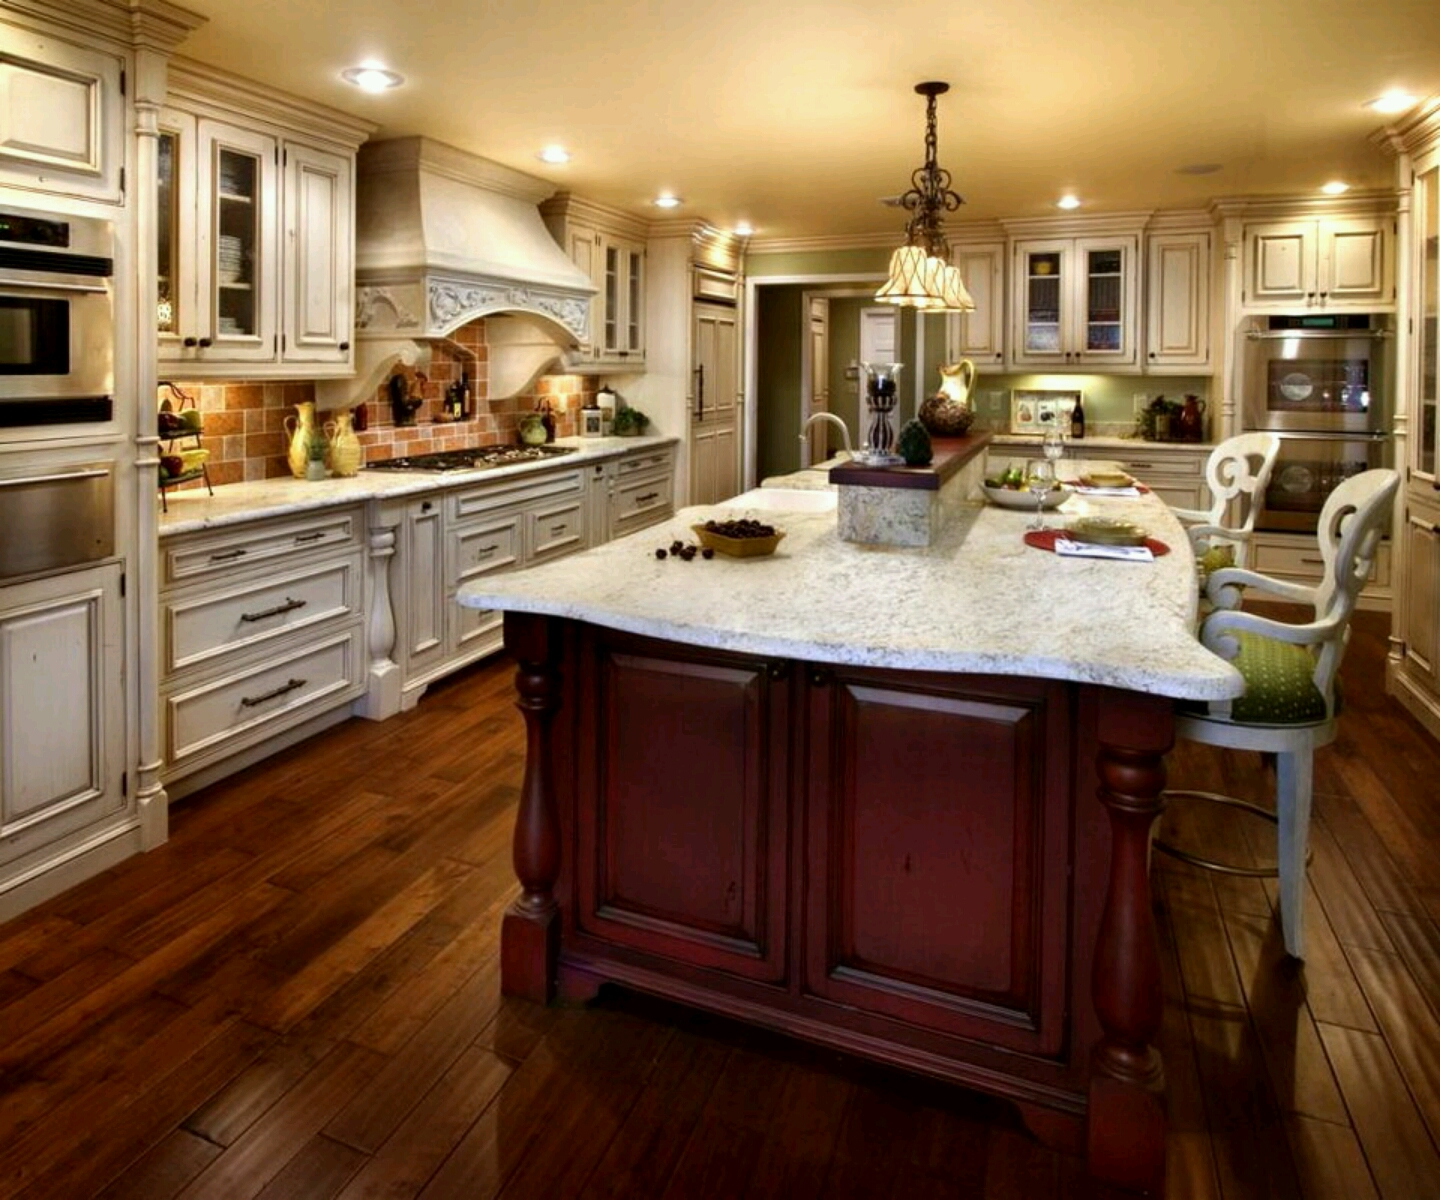 Luxury kitchen modern kitchen cabinets designs furniture gallery - Luxurious kitchen designs ...